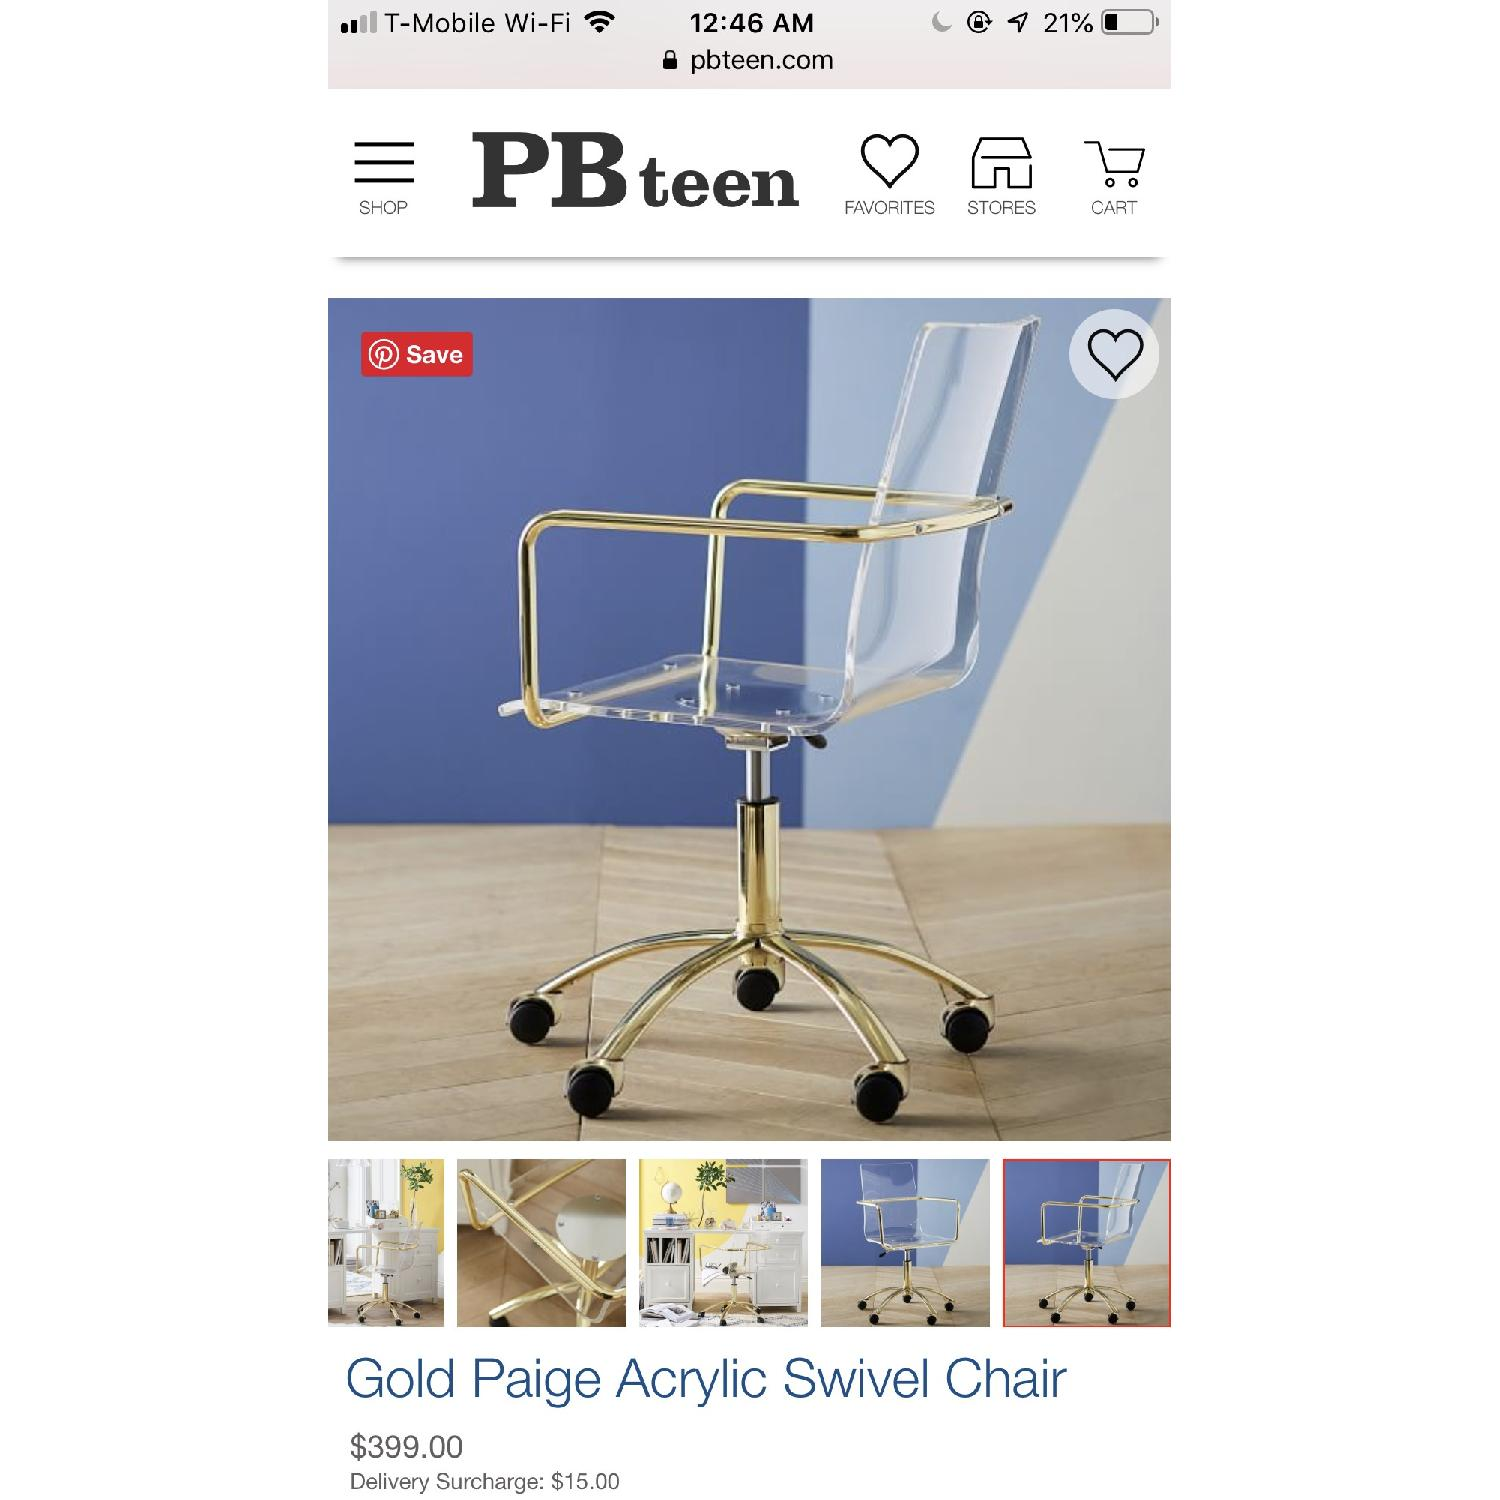 Pottery Barn Gold Paige Acrylic Swivel Chair-1